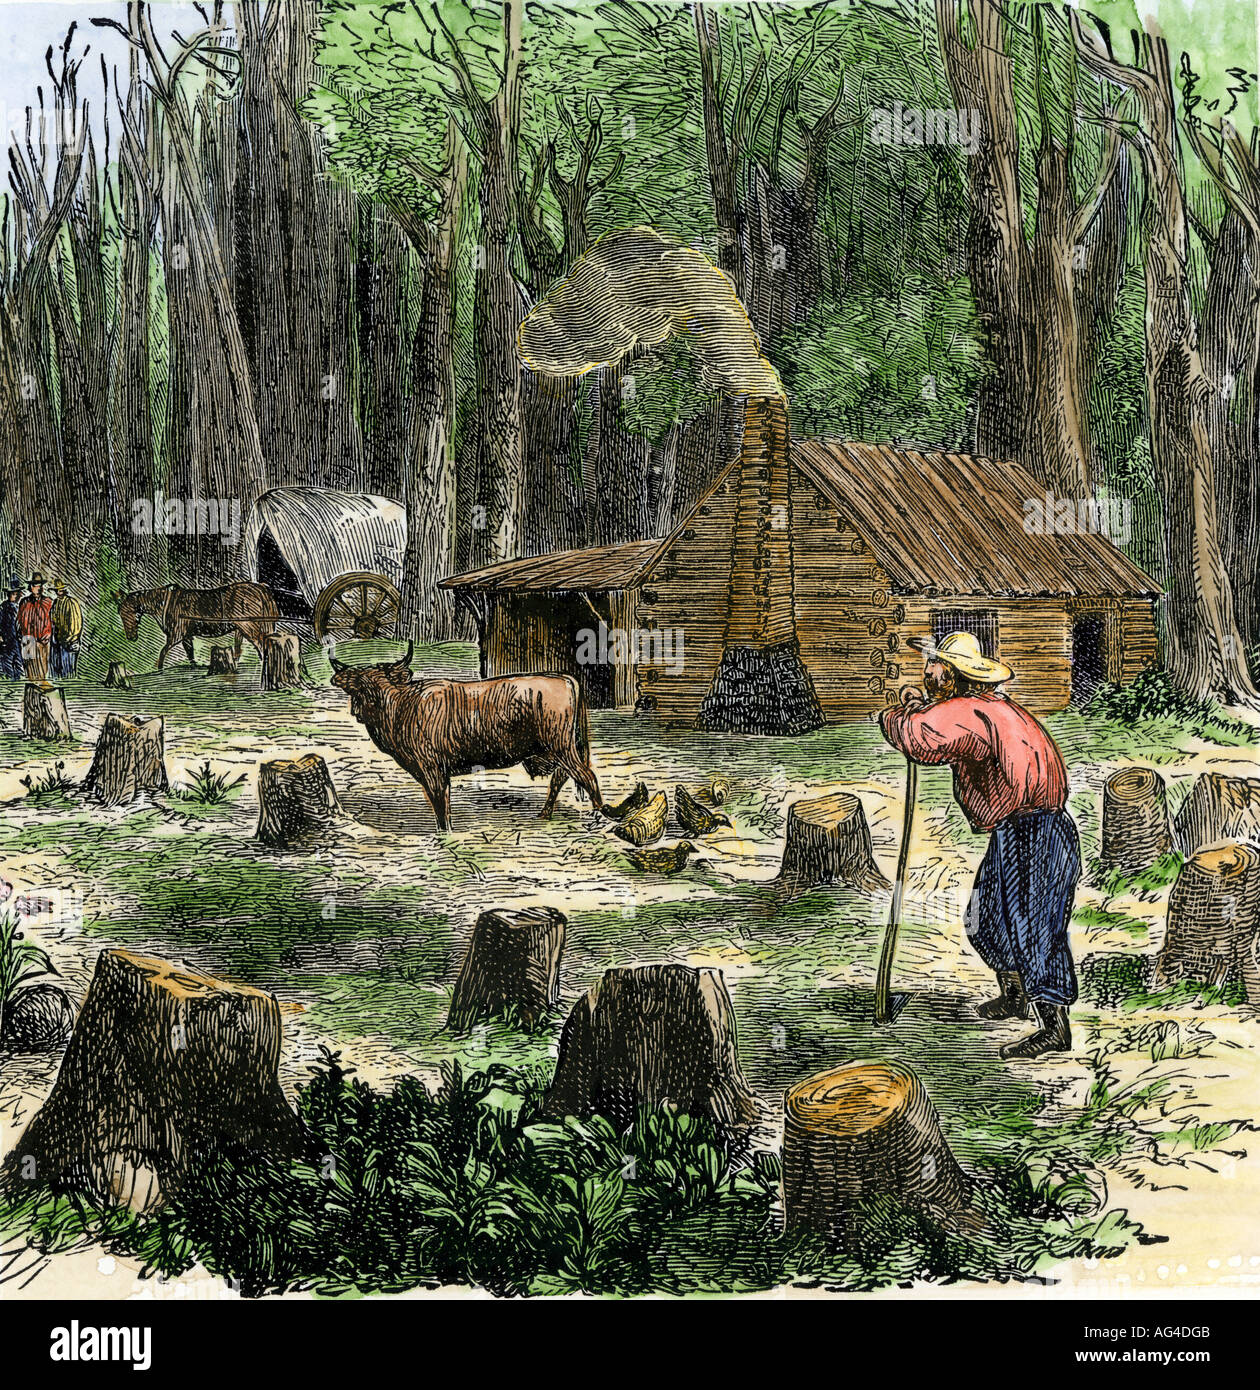 Marvelous photograph of Pioneer Clearing Trees From Land Around His Log Cabin Stock Photo  with #877F44 color and 1260x1390 pixels